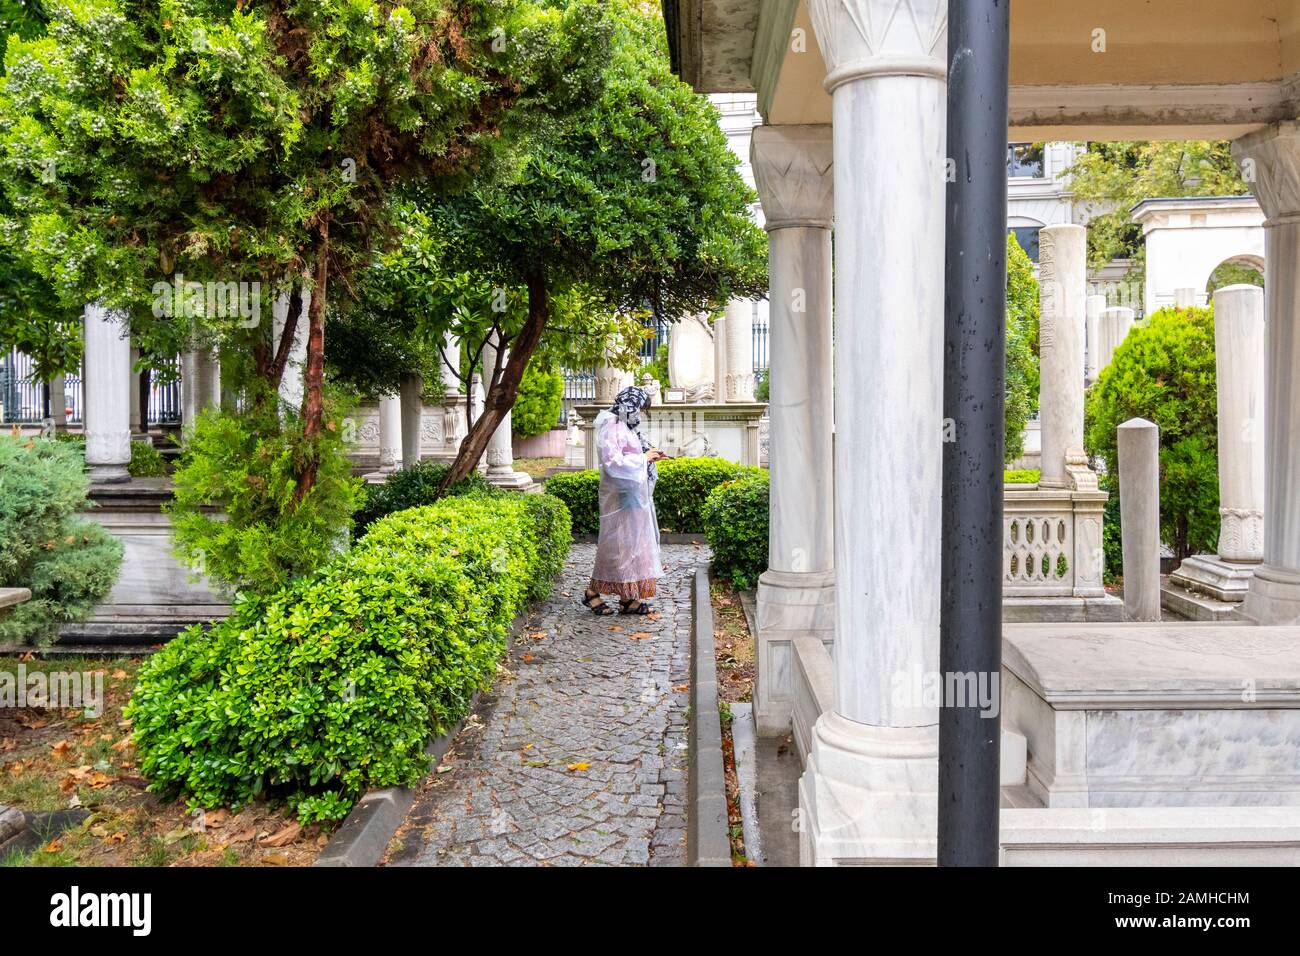 A Muslim woman visits the interior courtyard of the Ahmet Tevfik Paşa Tomb filled with marbled headstones, graves and memorials to Turkey's sultans. Stock Photo